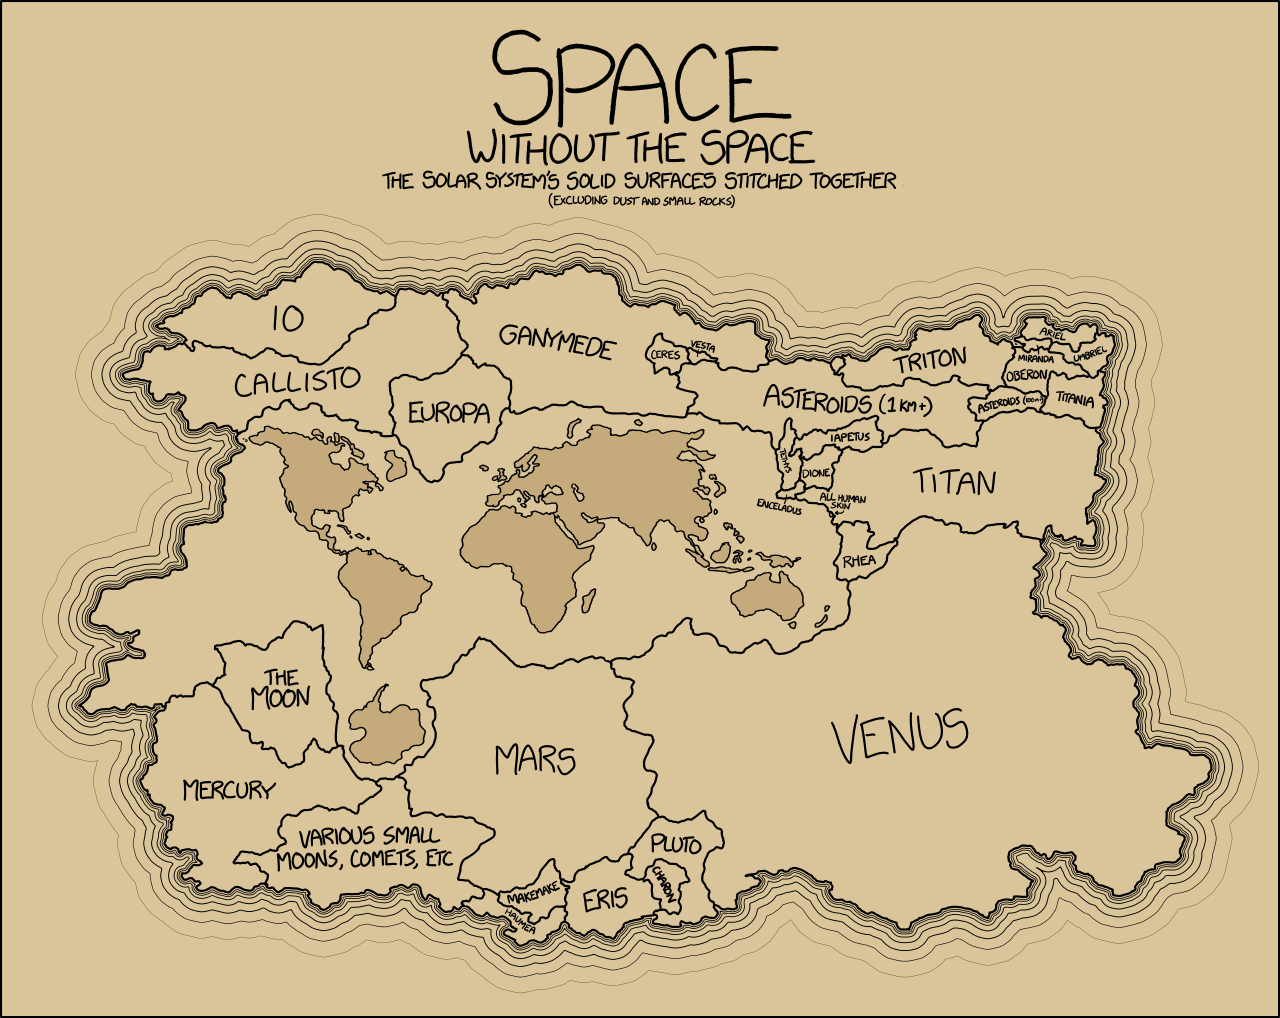 Pin by evan sharp on graphic pinterest surface area solar a visualization of all the solar systems solid surfaces stitched together by xkcd gumiabroncs Image collections